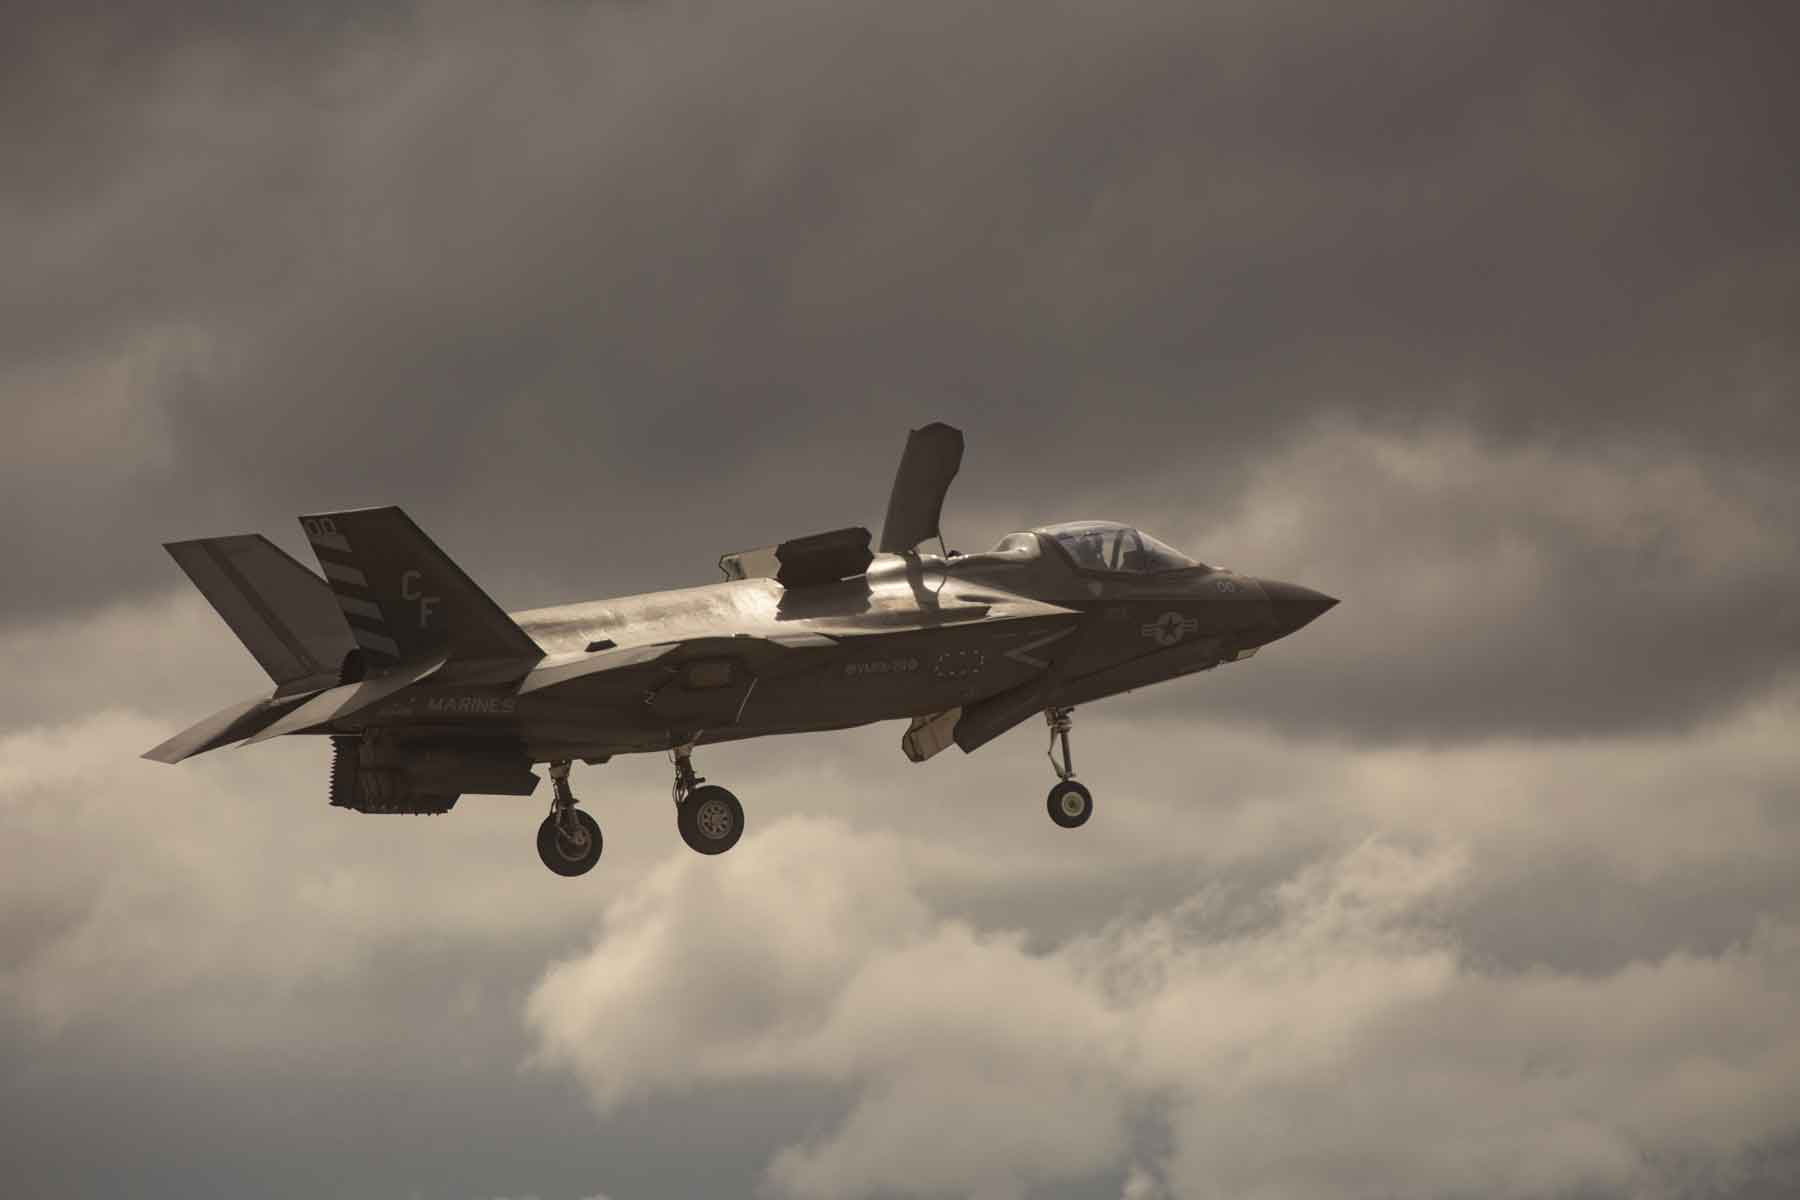 US OKs Sale of a Dozen F-35B Fighters to Singapore